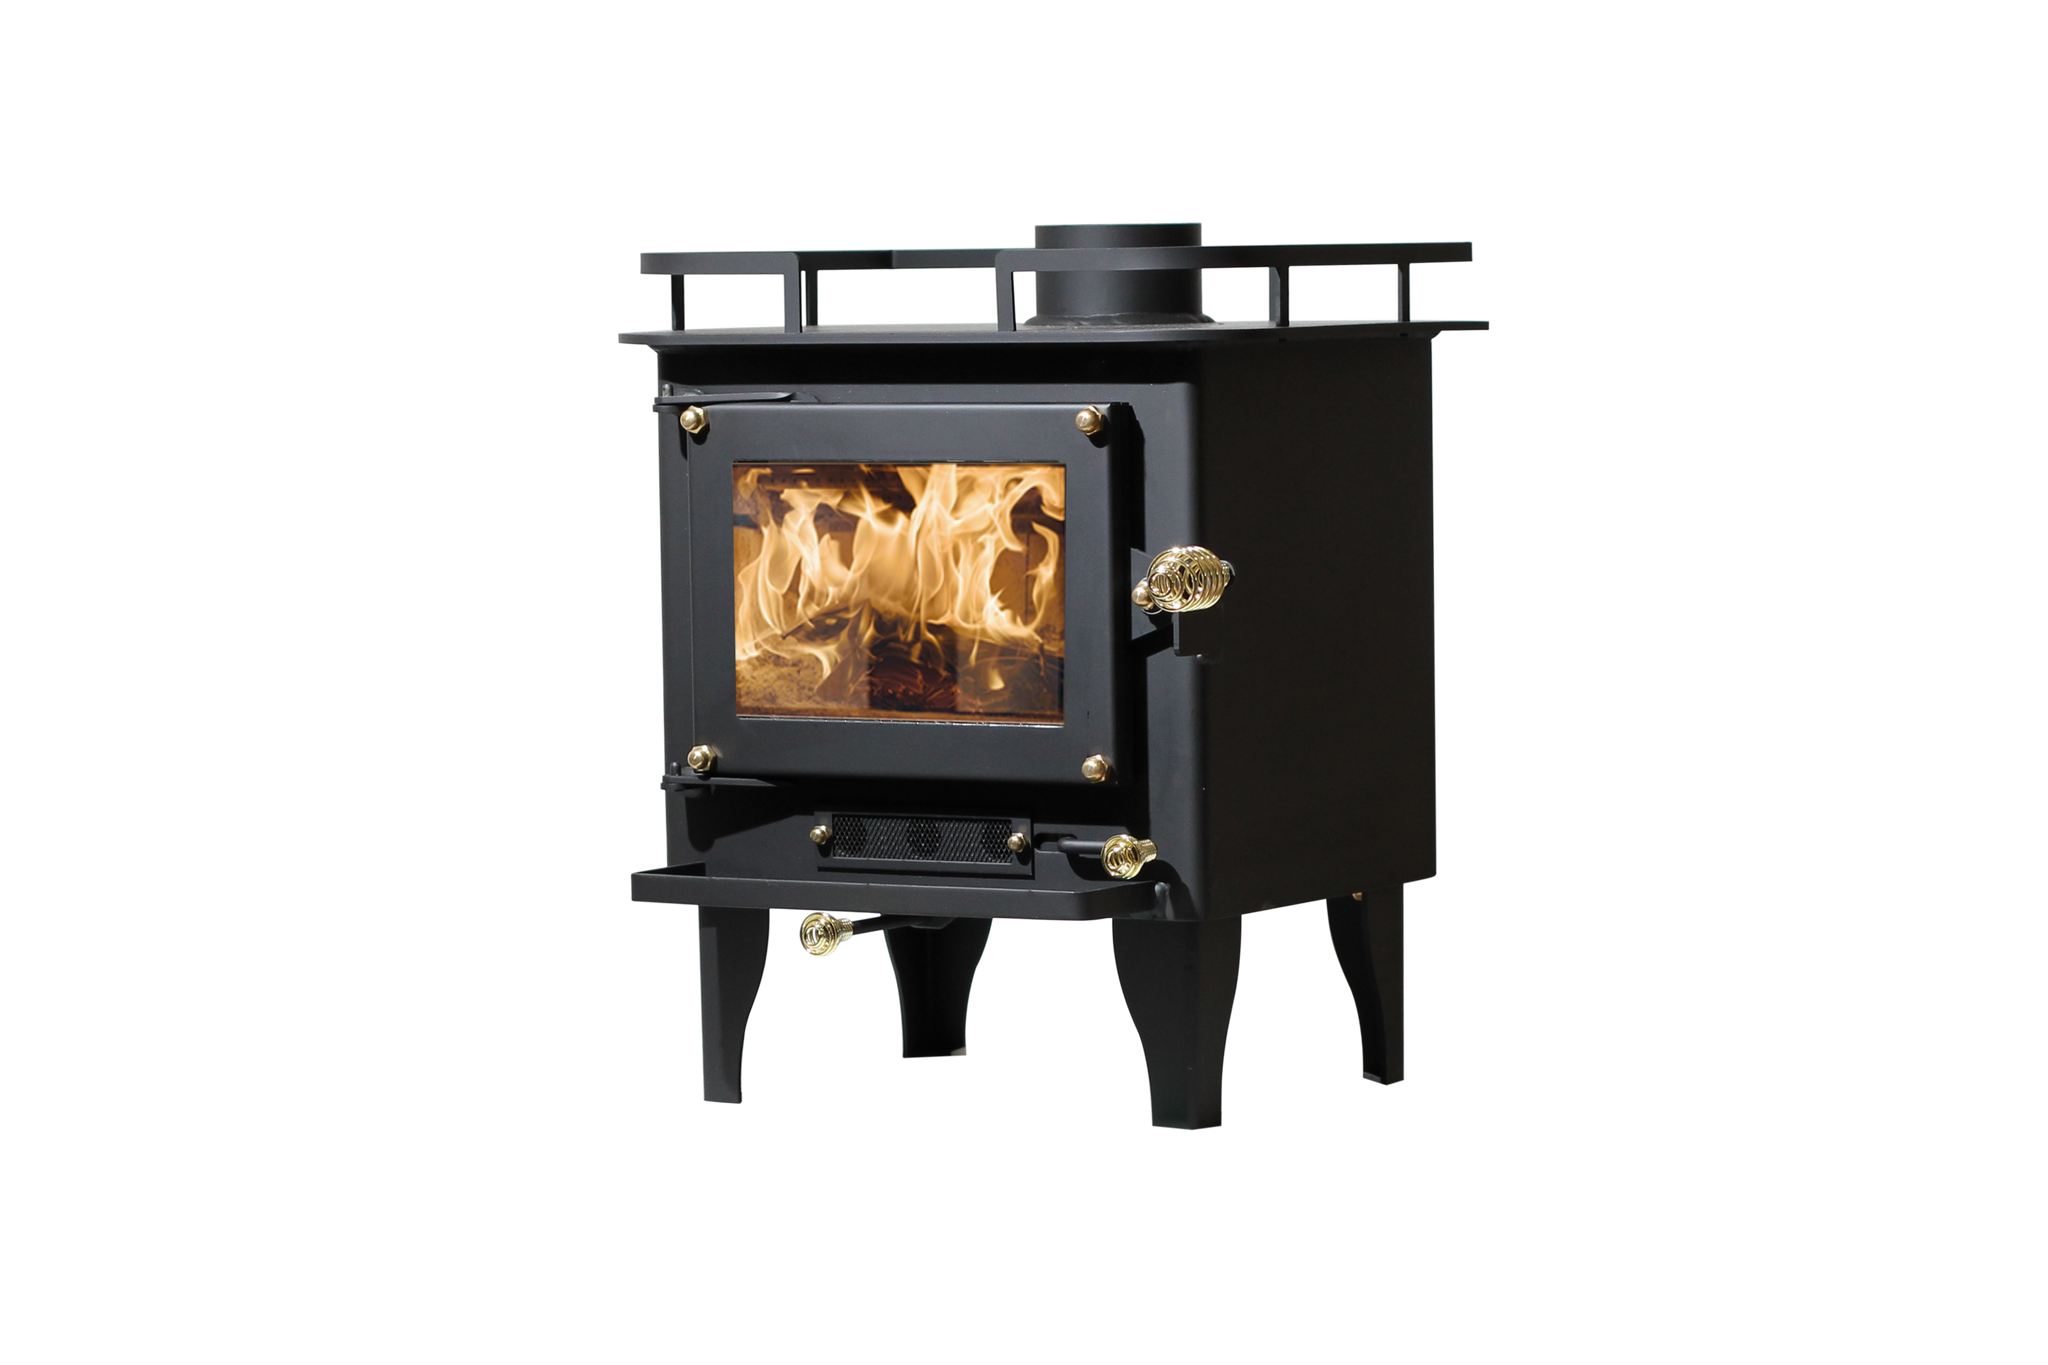 Cb 1210 Grizzly Cubic Mini Wood Stove Cubic Mini Wood Stoves